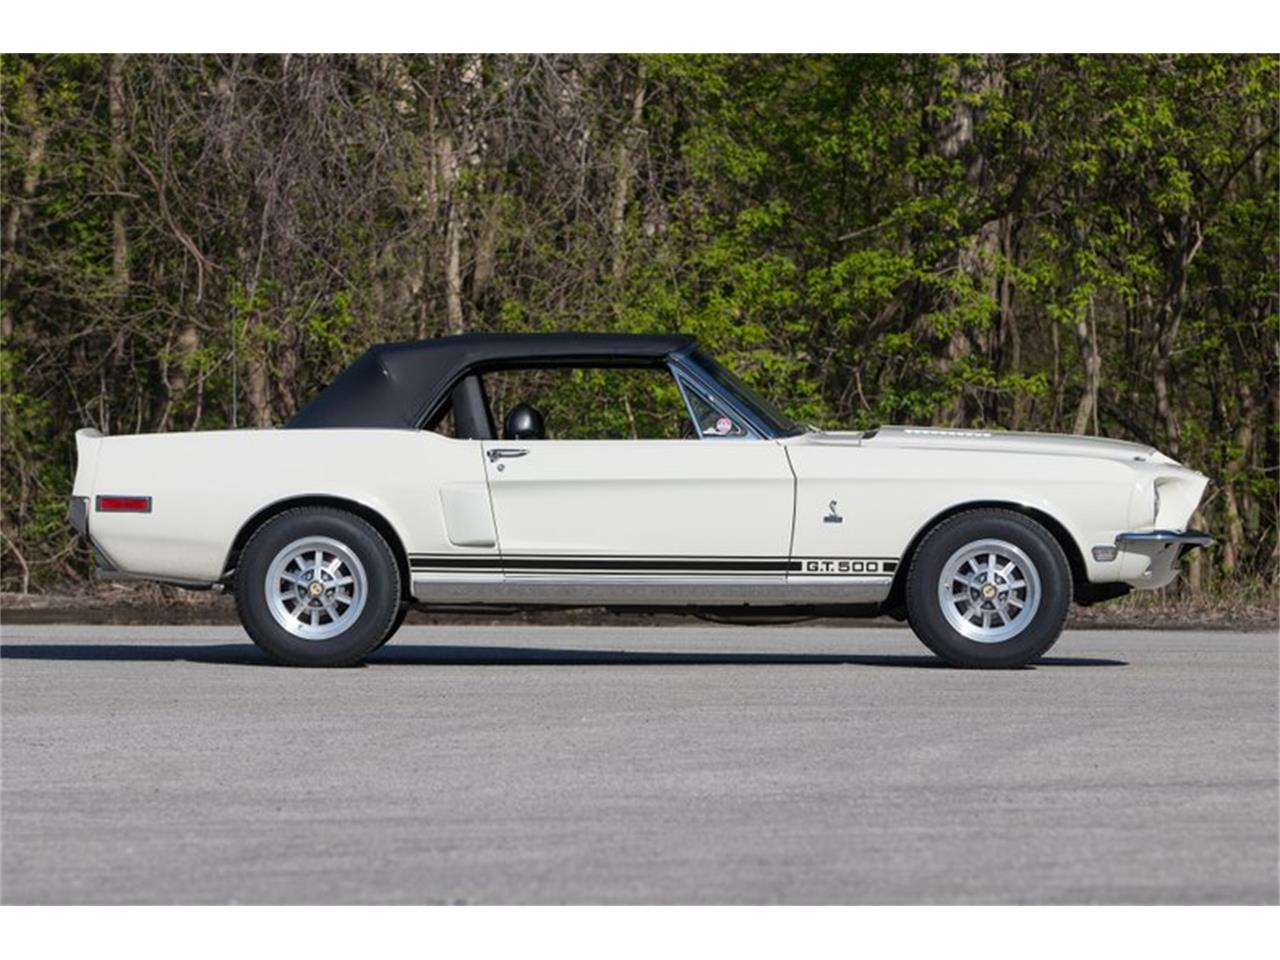 Large Picture of Classic 1968 Shelby GT500 located in St. Charles Missouri - $157,500.00 Offered by Fast Lane Classic Cars Inc. - PWHW